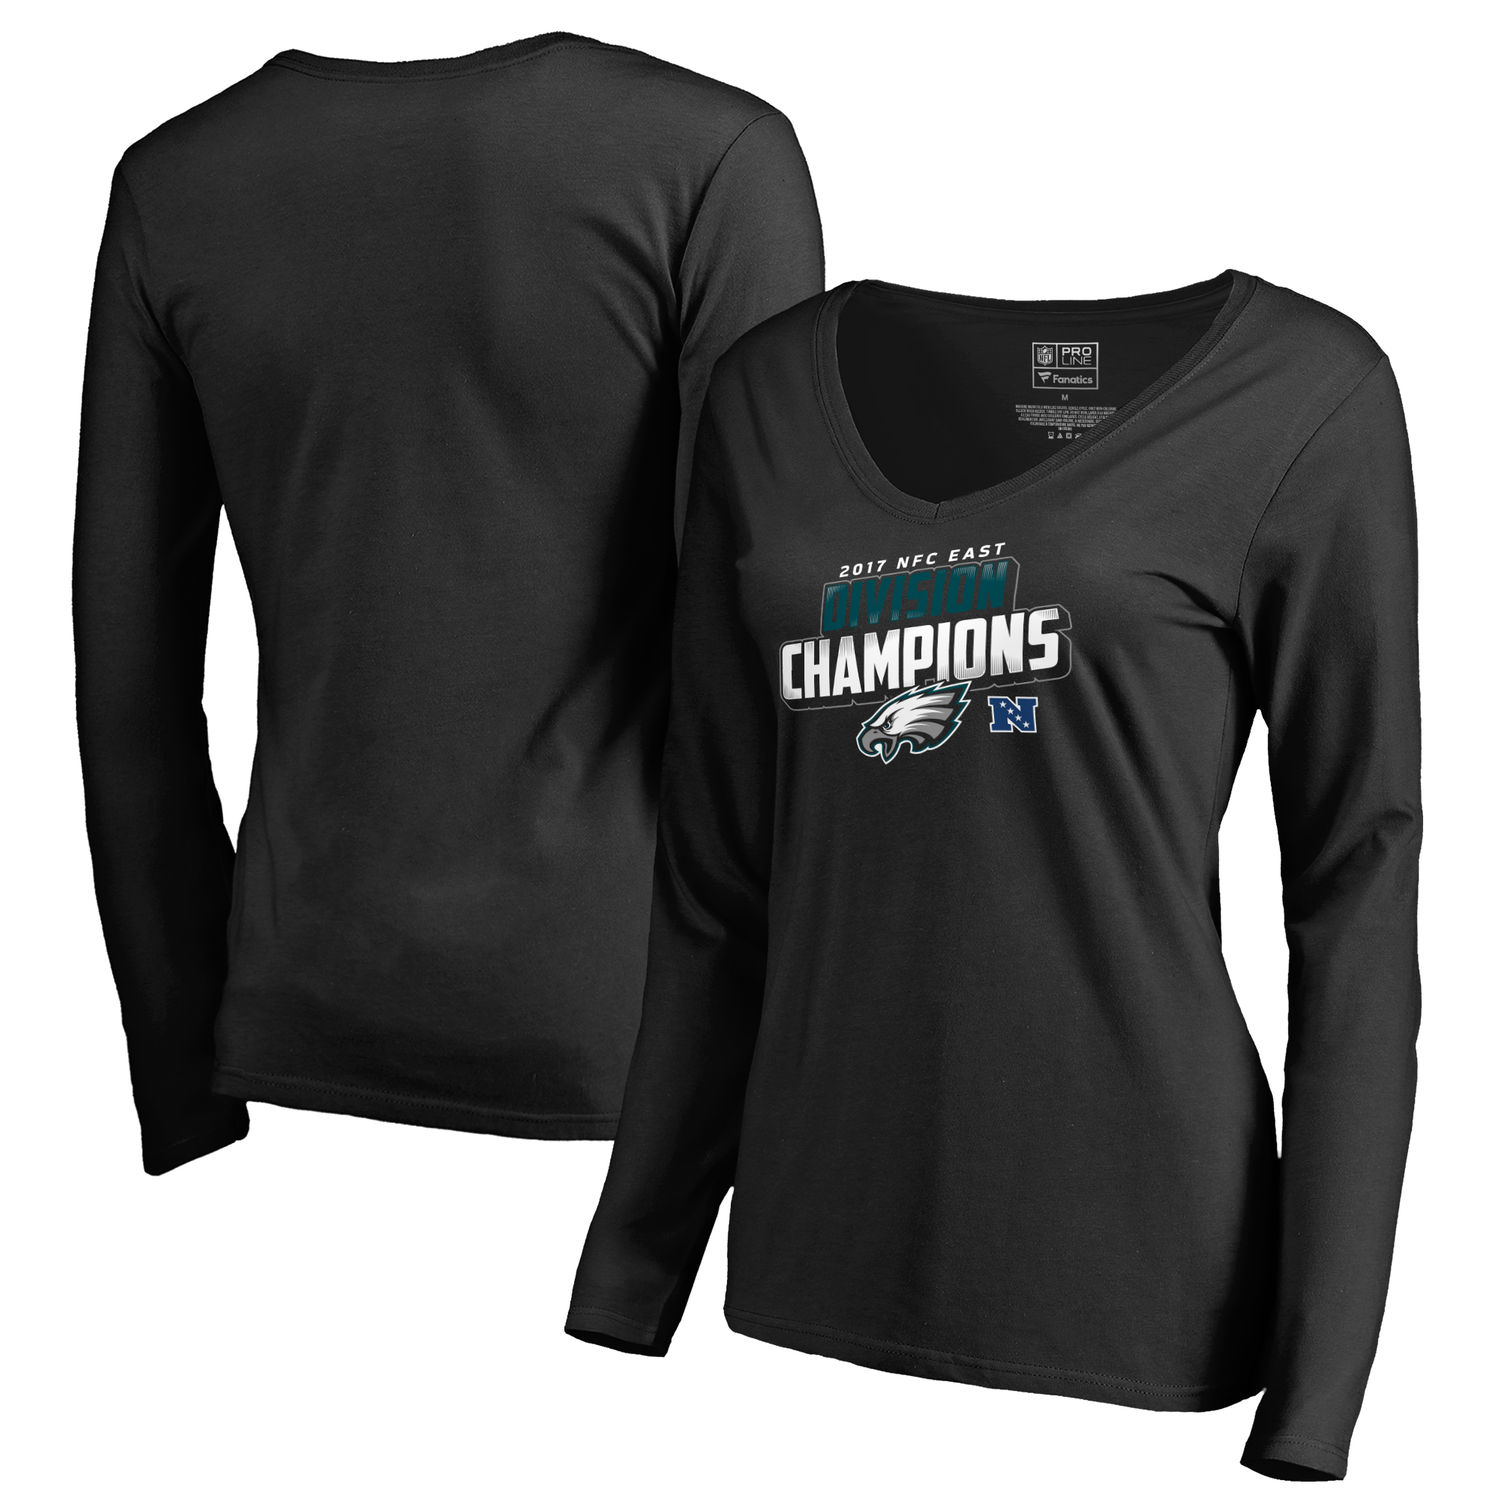 Women's Philadelphia Eagles NFL Pro Line by Fanatics Branded Black 2017 NFC East Division Champions Long Sleeve V Neck T Shirt